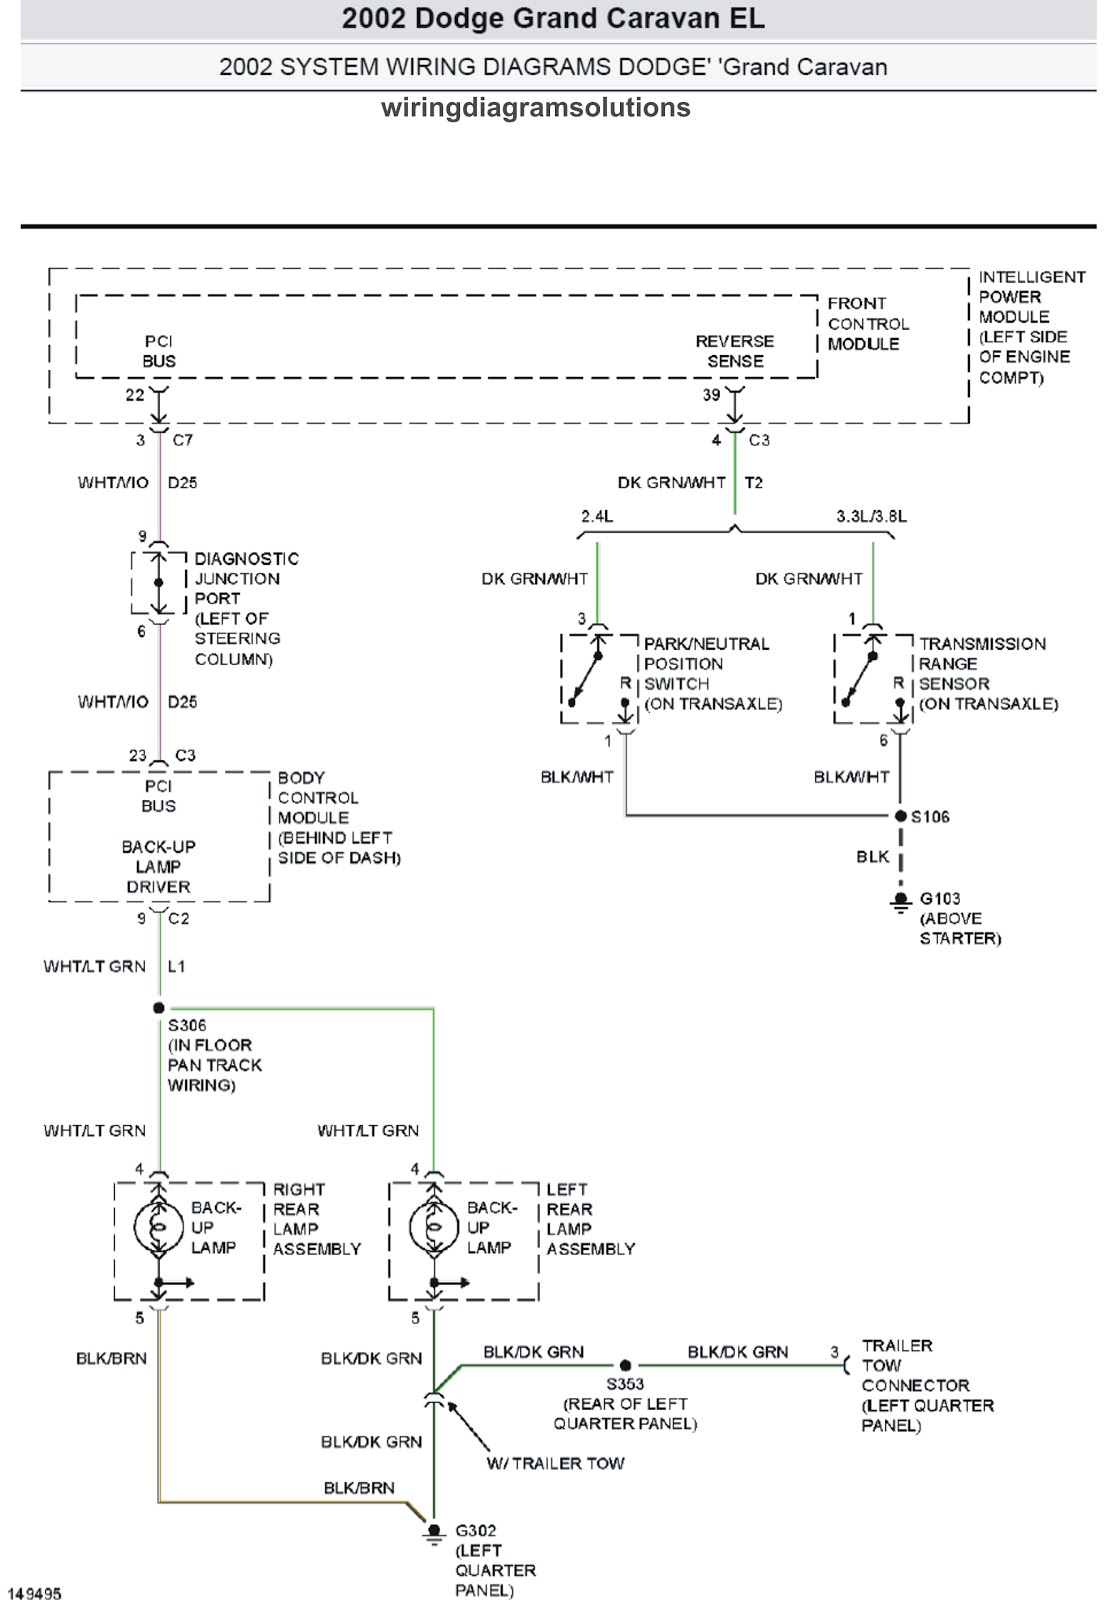 medium resolution of may 2011 schematic wiring diagrams solutions 02 dodge caravan wiring diagram 2003 dodge grand caravan wiring